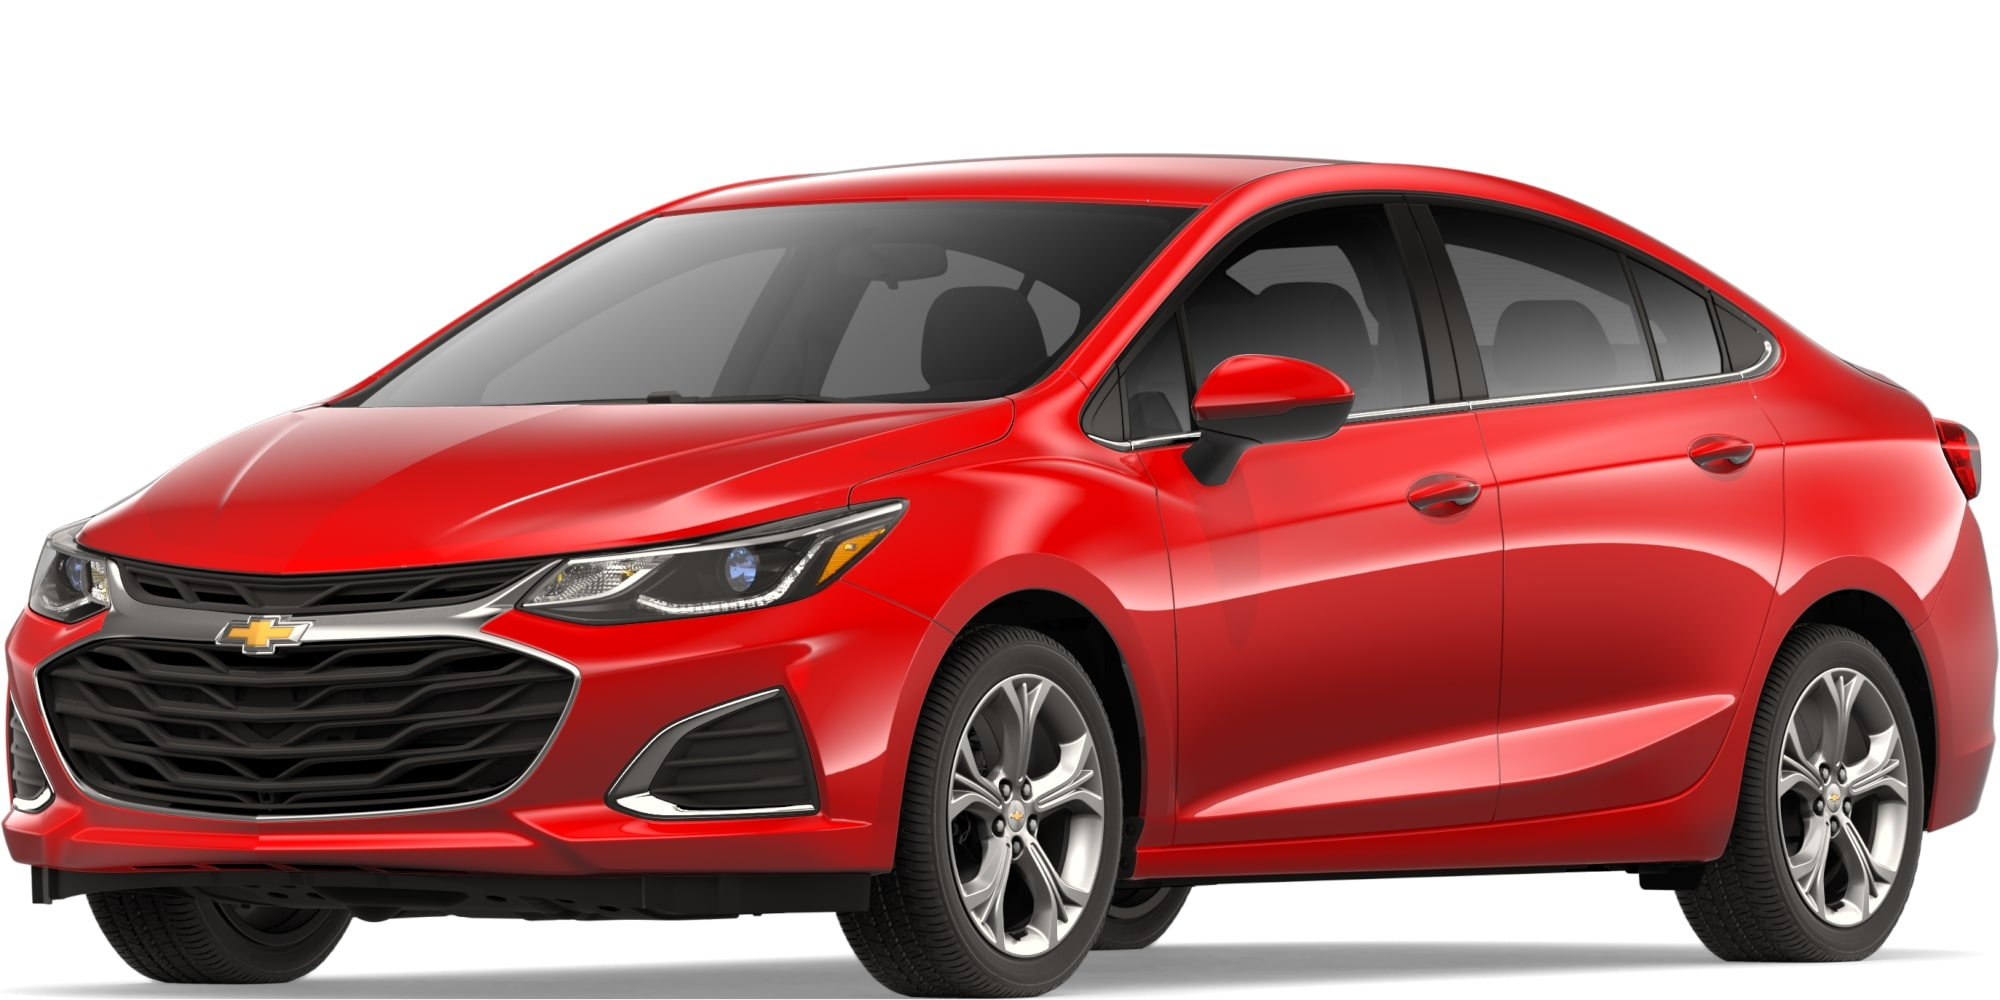 Chevrolet Cruze Owners Manual: Turn and Lane-Change Signals